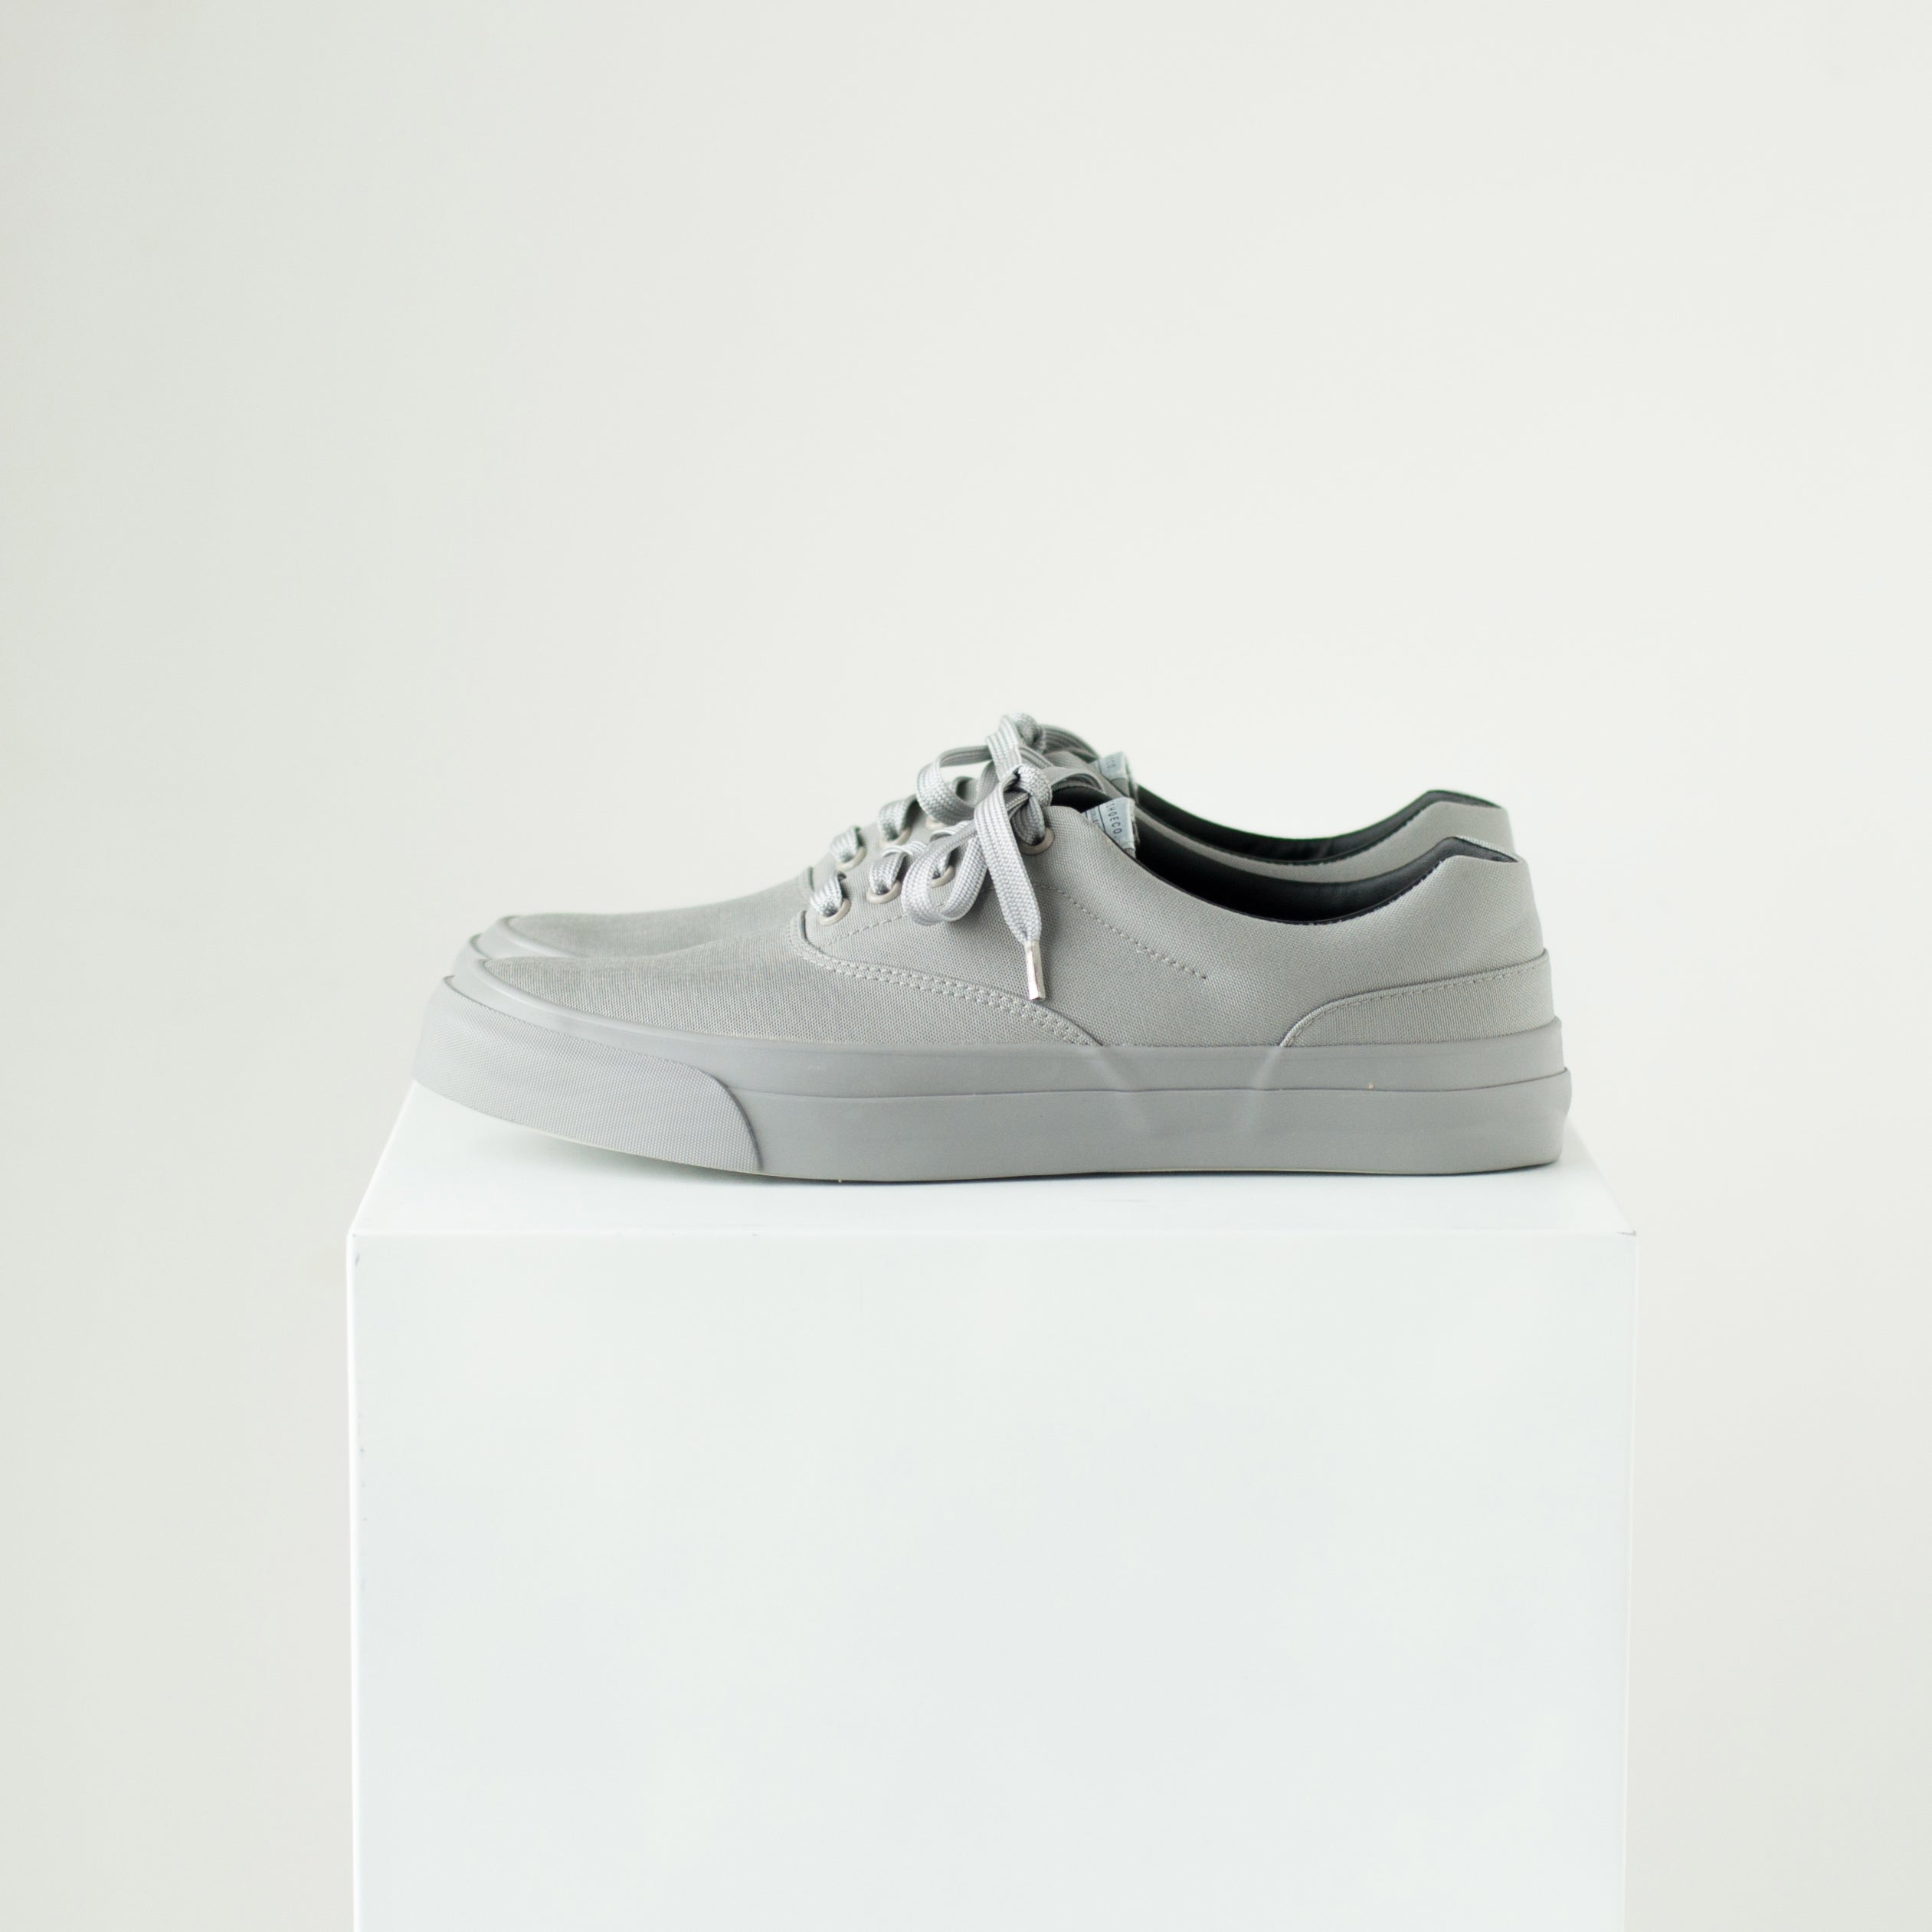 SOLID KICKS NO.2 - GRAY/GRAY